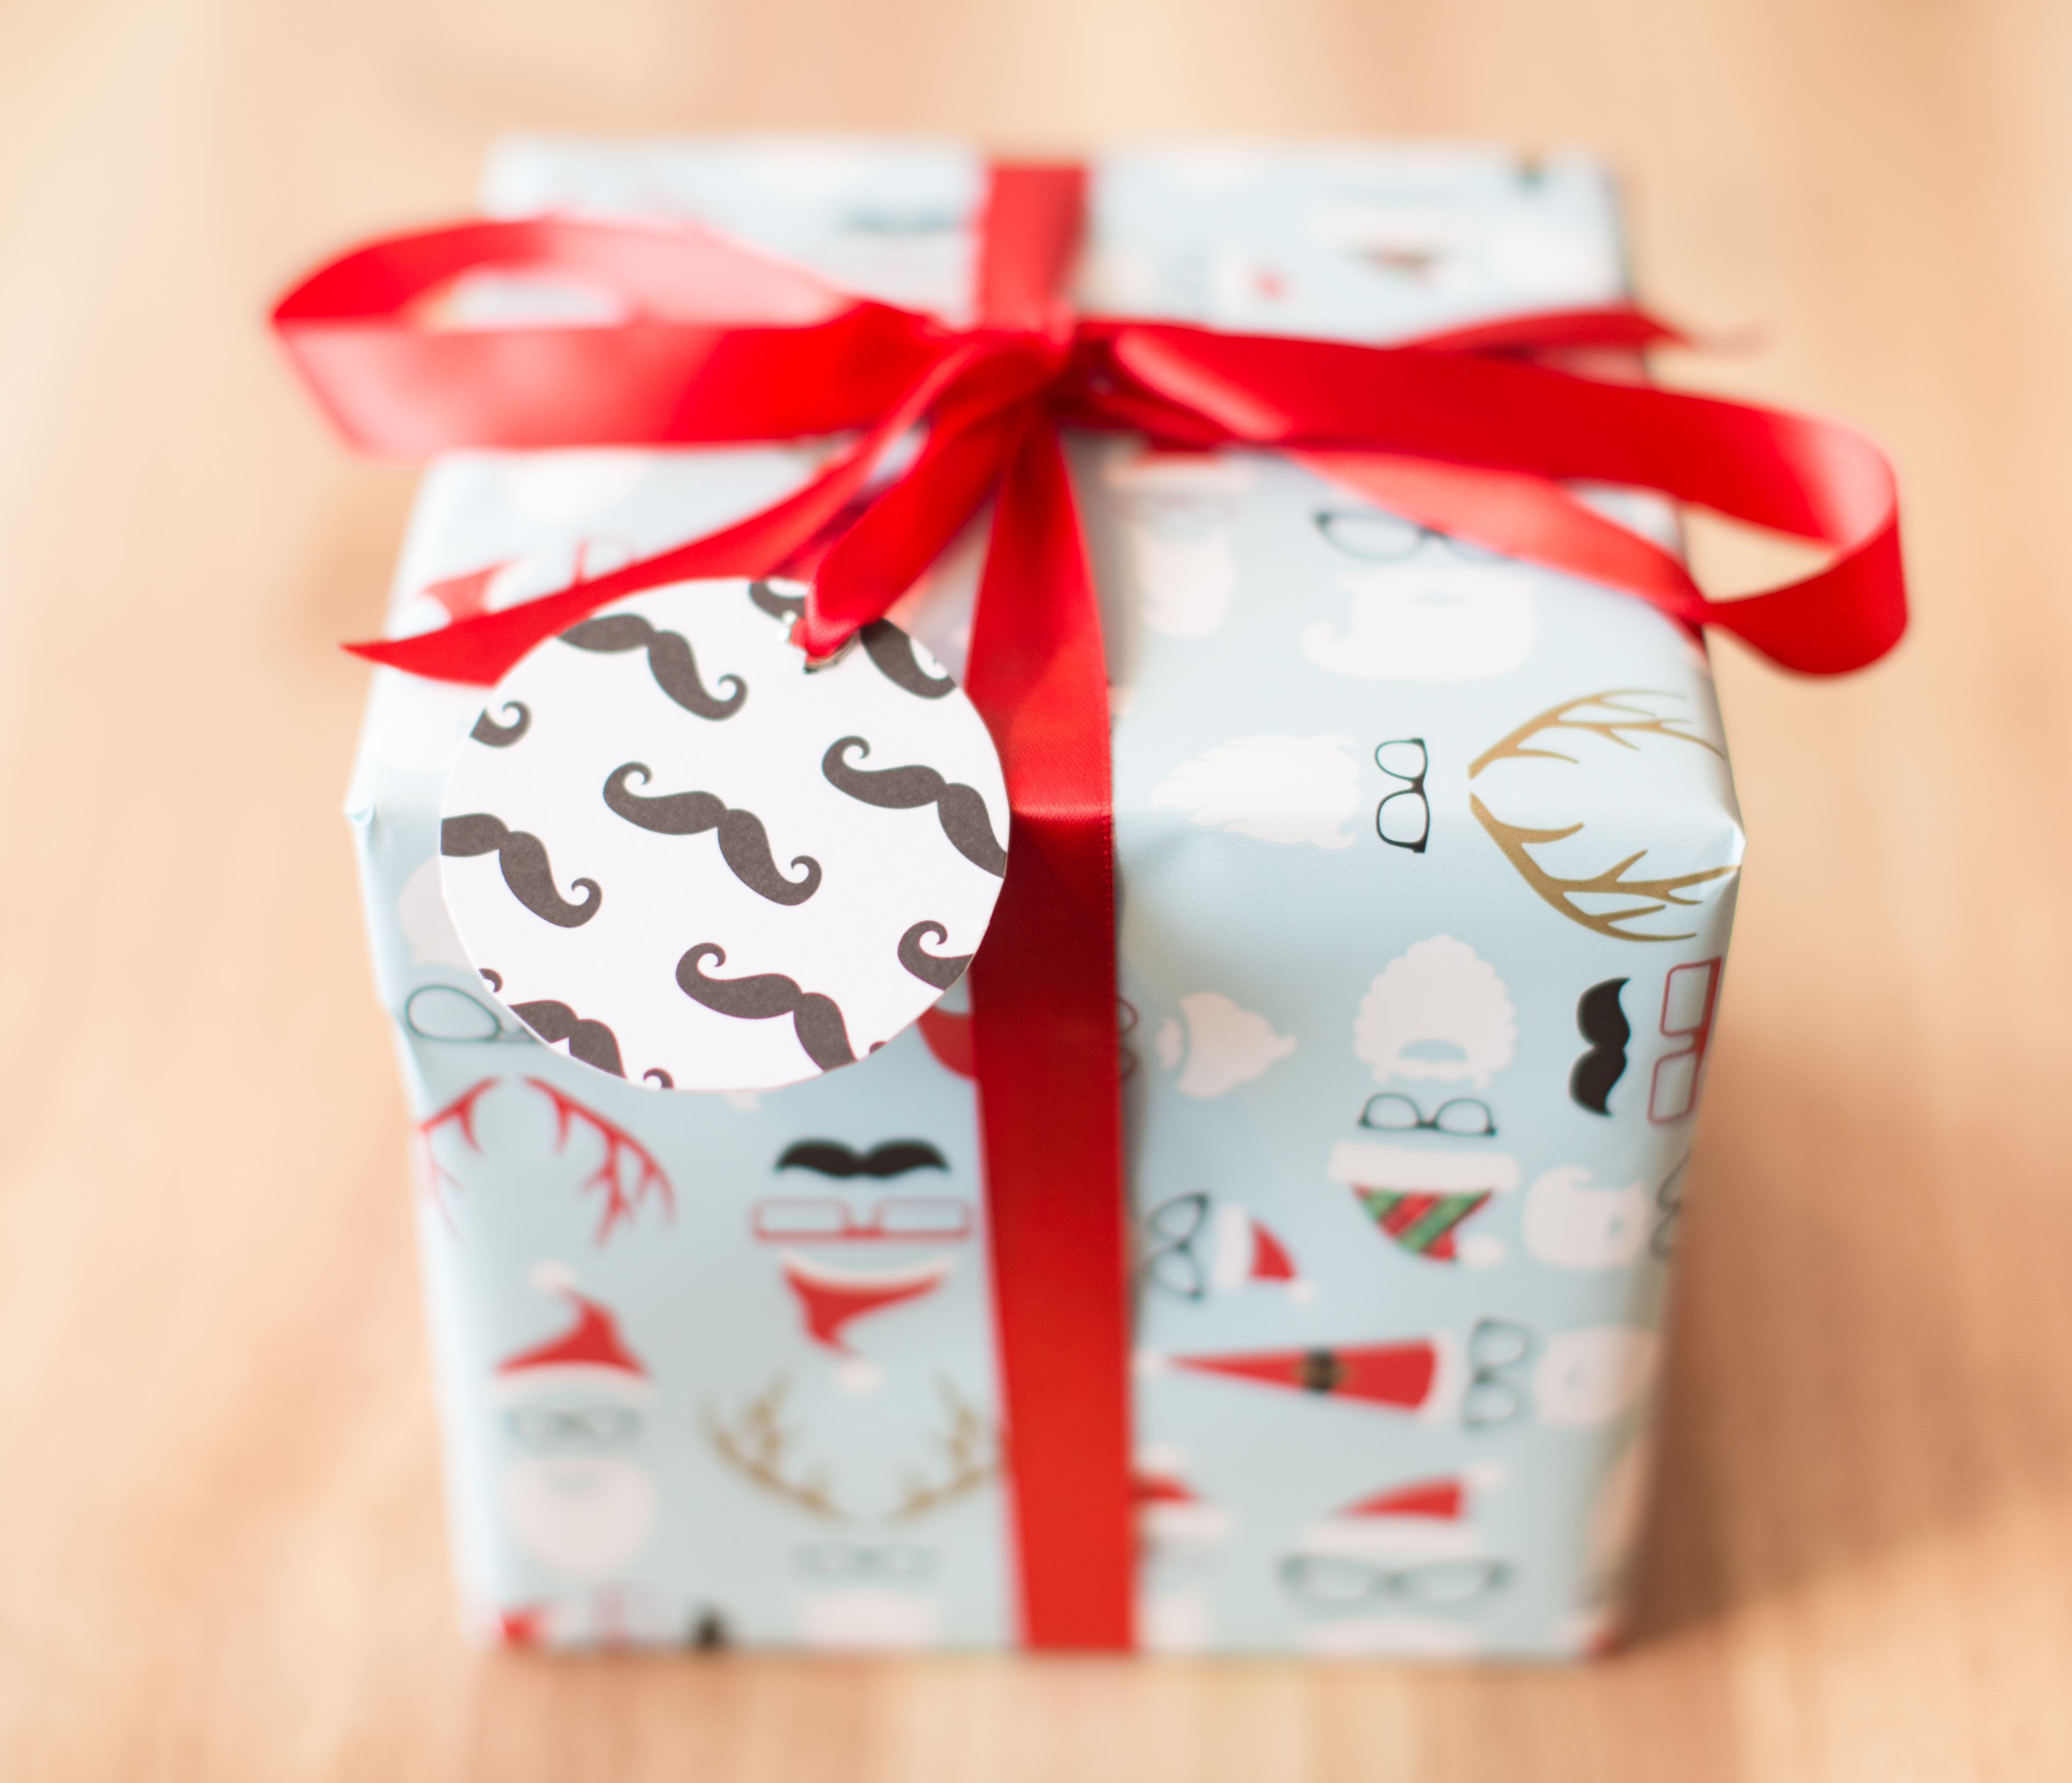 New wrapped gift boxes bathvs bee autiful box made for those who love all things honey we had this wrapping paper printed just for our bee boxes so the presentation is super unique negle Image collections